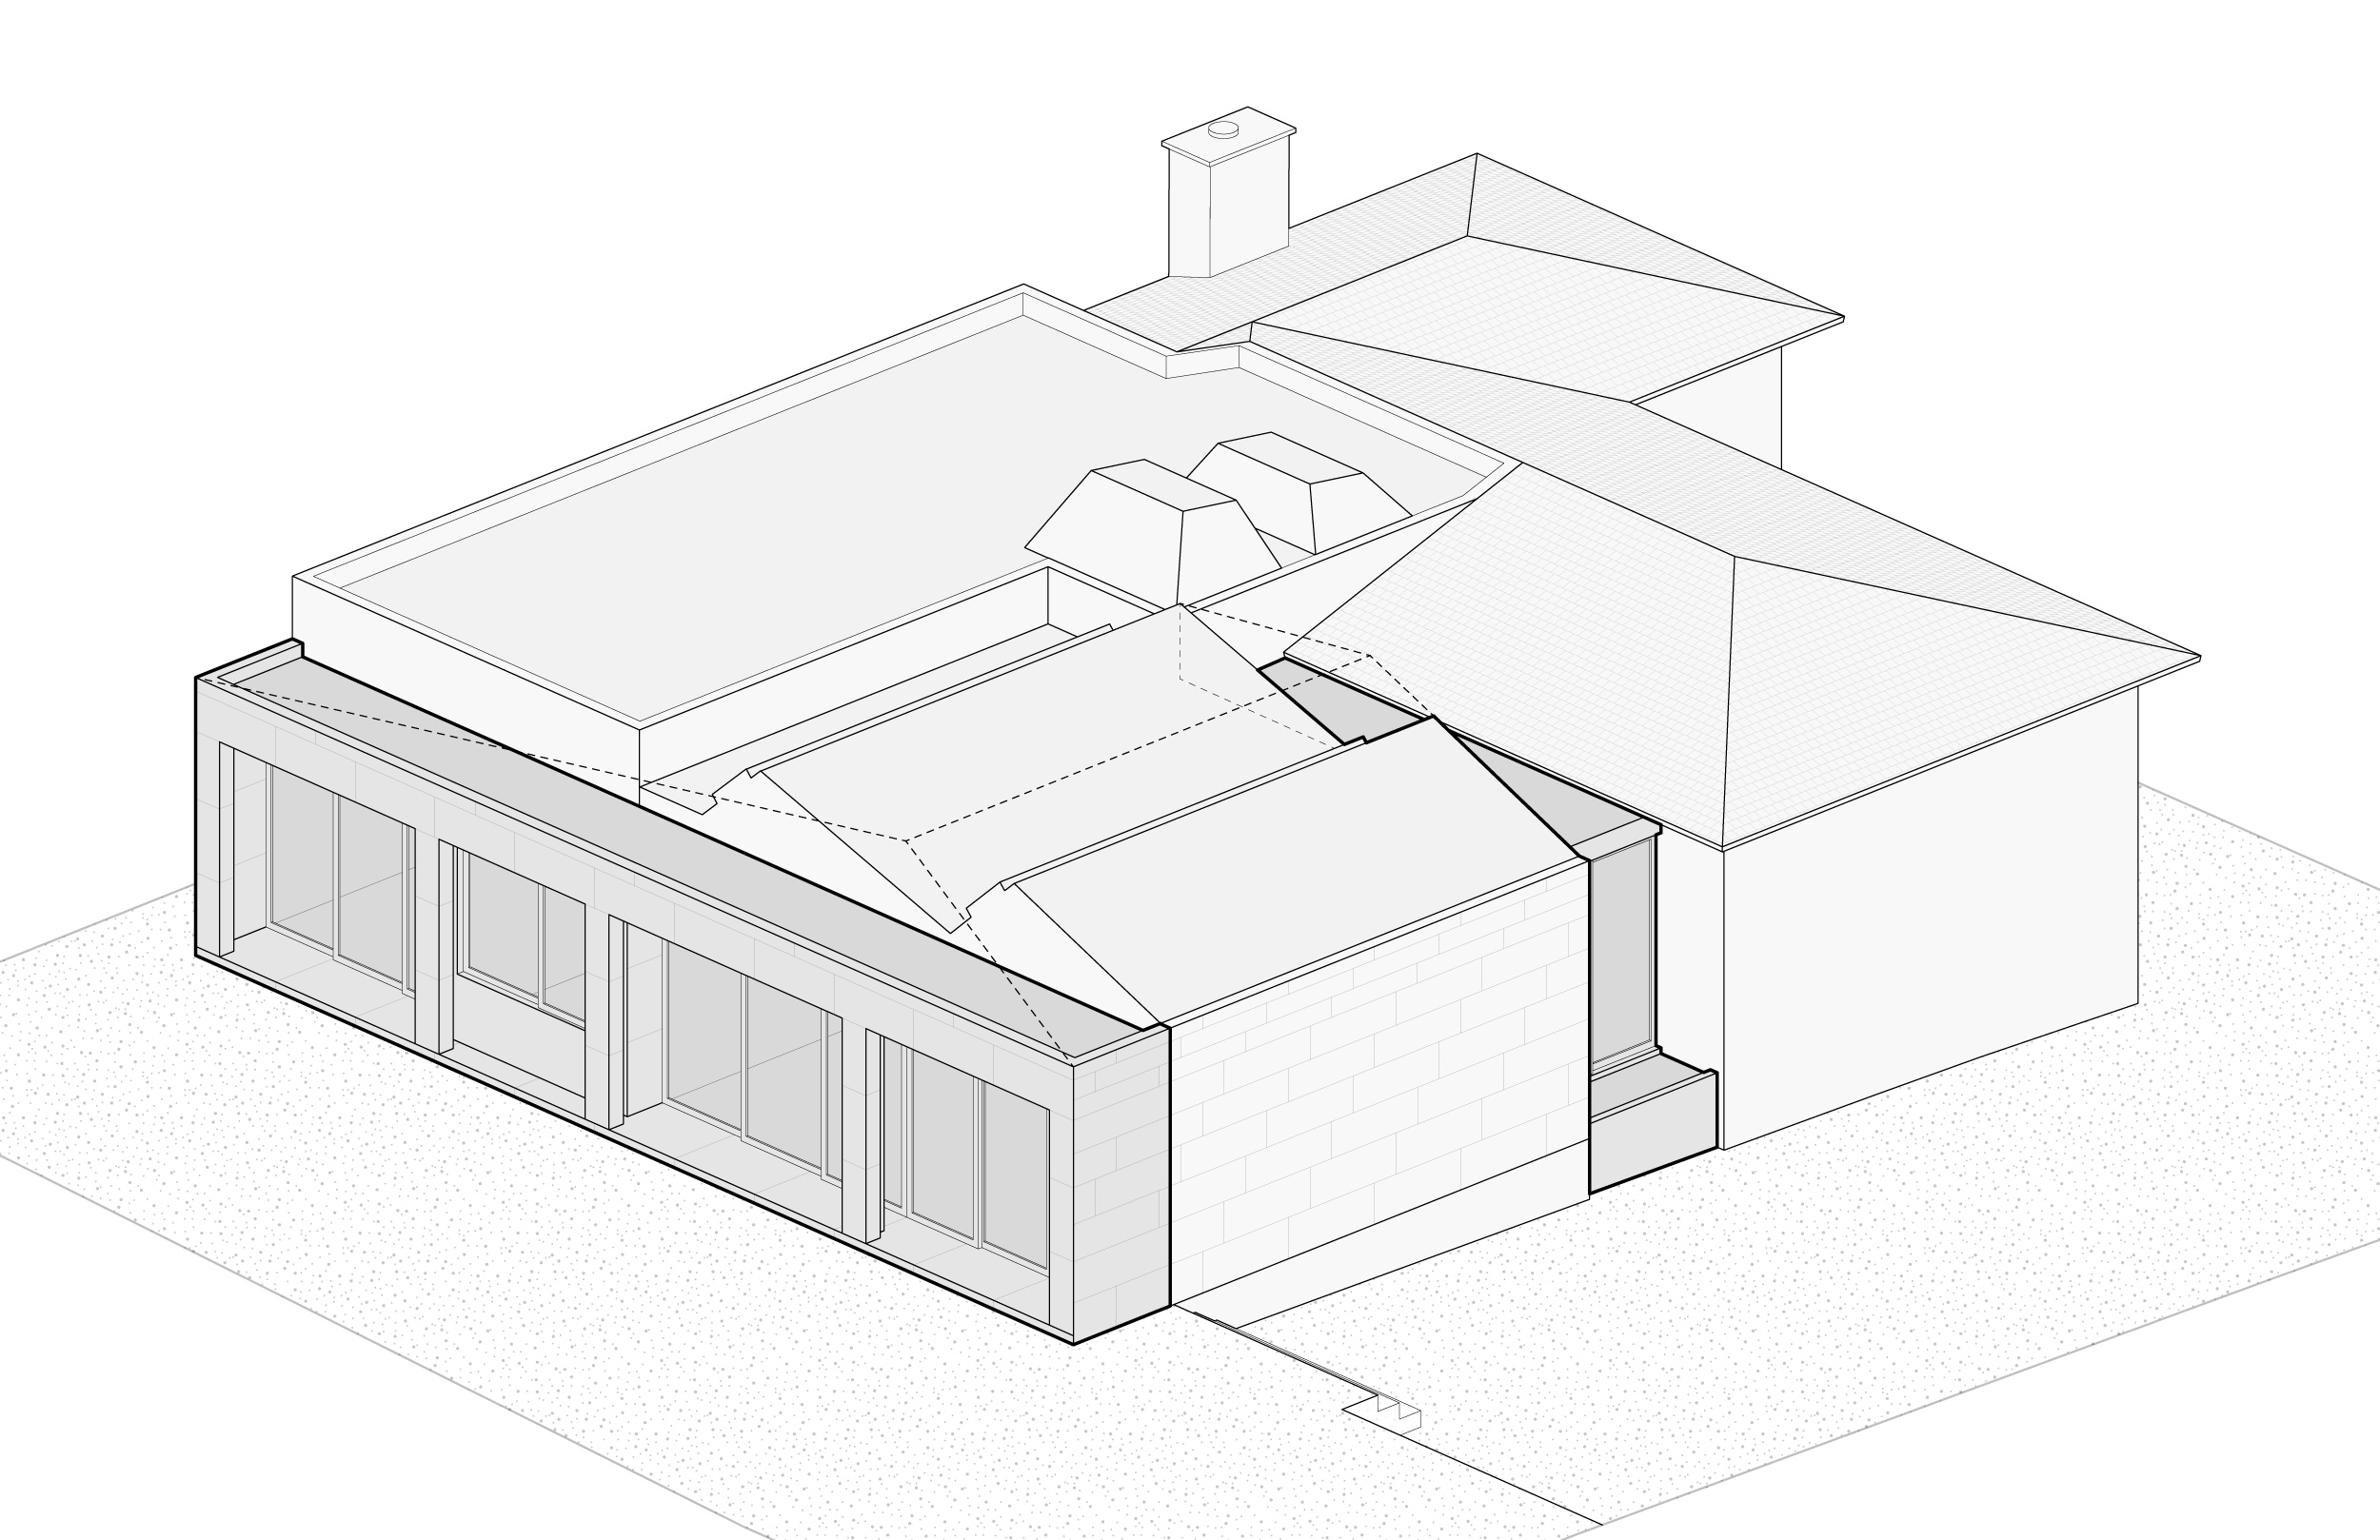 Egan-House_Diagram_04.jpg